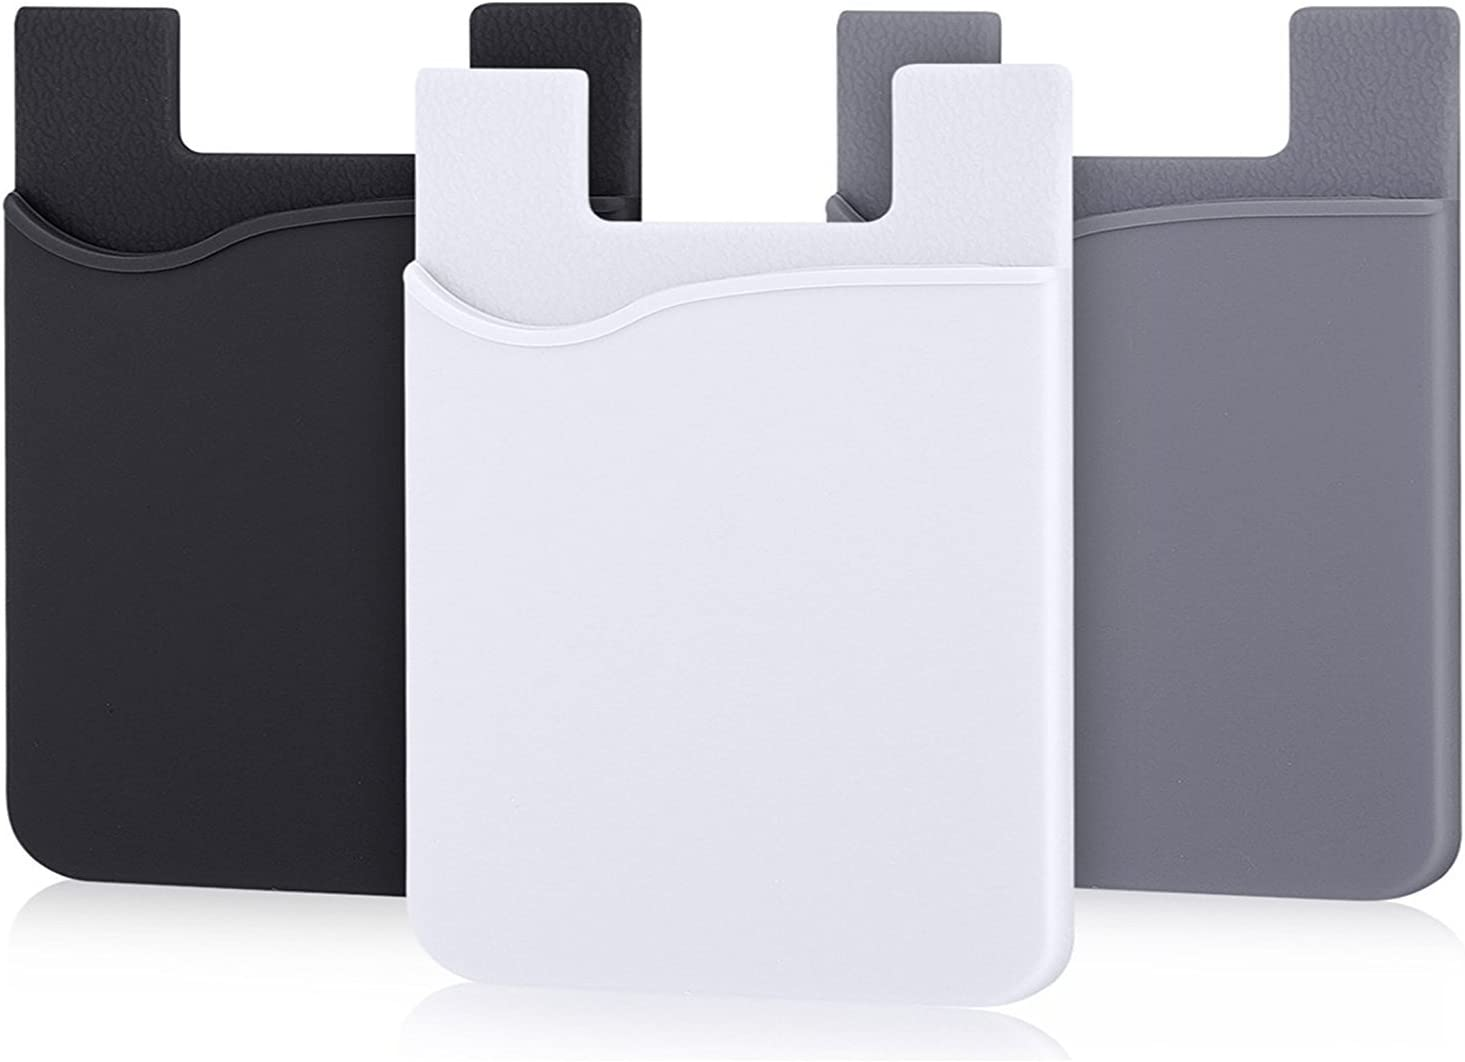 AgentWhiteUSA Cell Phone Wallet, Stick on Wallet (3 Pieces) (for Credit Card, Business Card & Id)   Compatible with Almost Every Phone   iPhone, Android & Most Smartphones